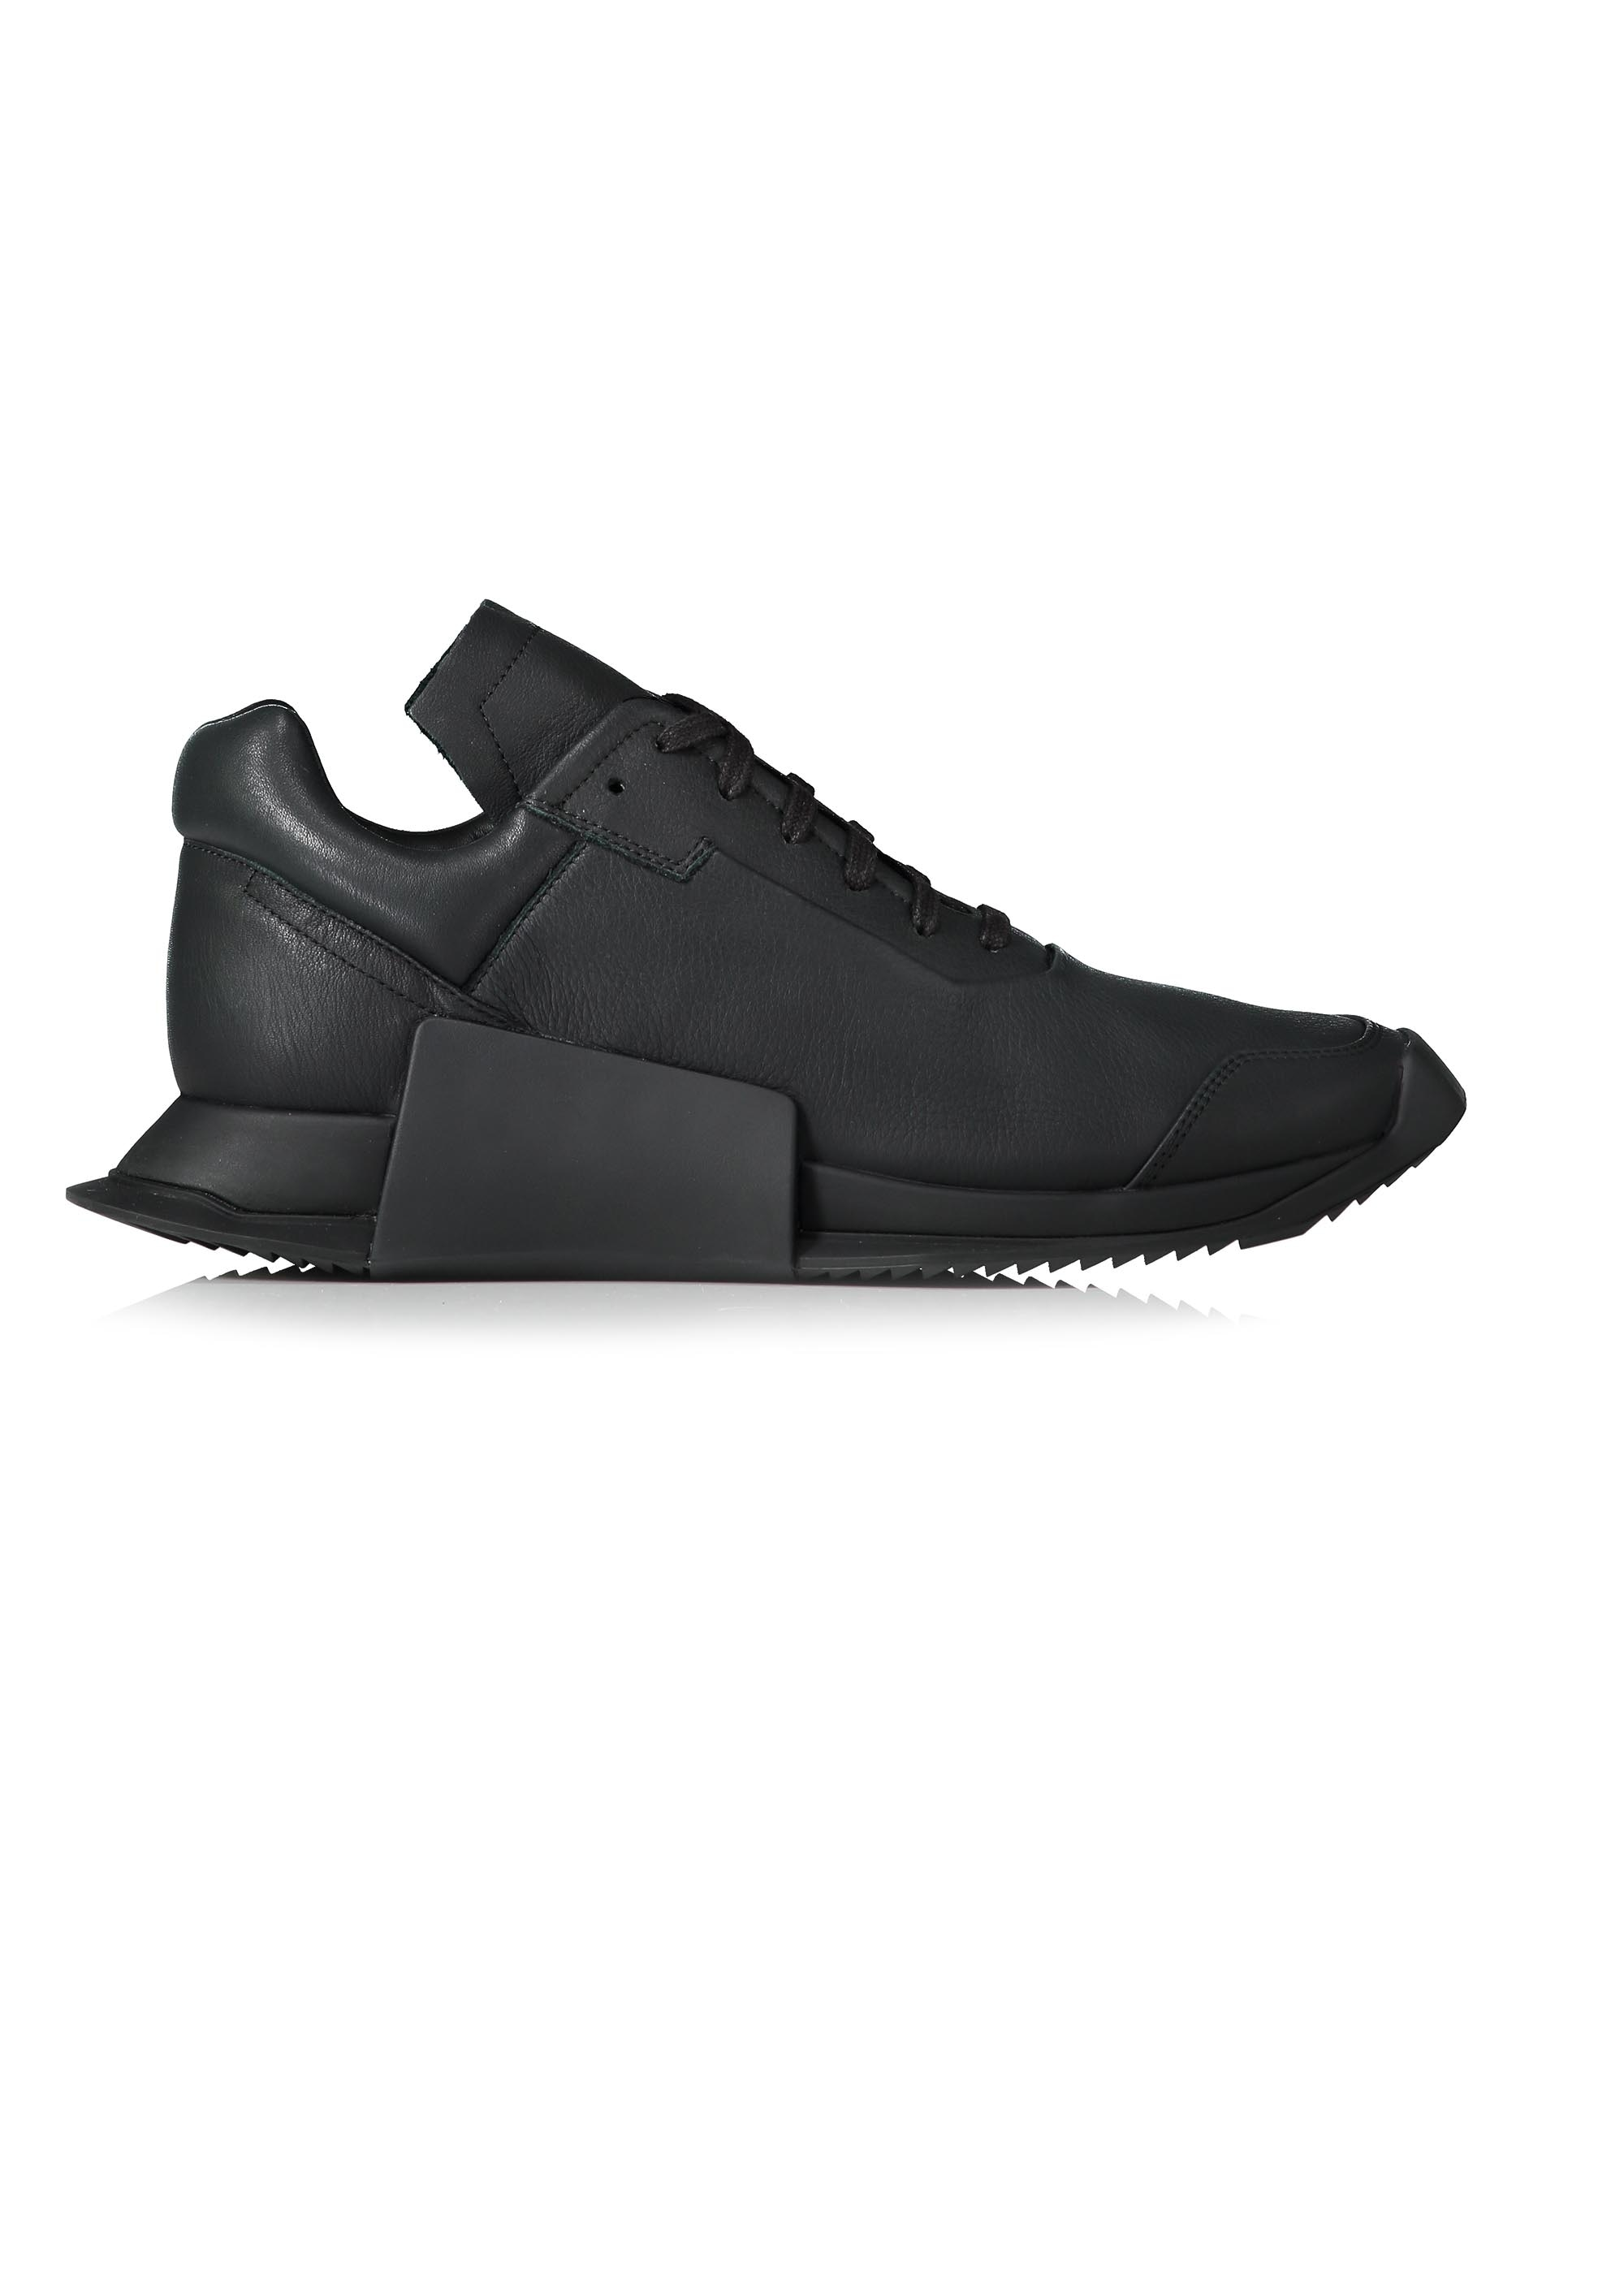 Adidas x Rick Owens Low Level Runner Low Owens II Black / Milk Trainers 948ab4